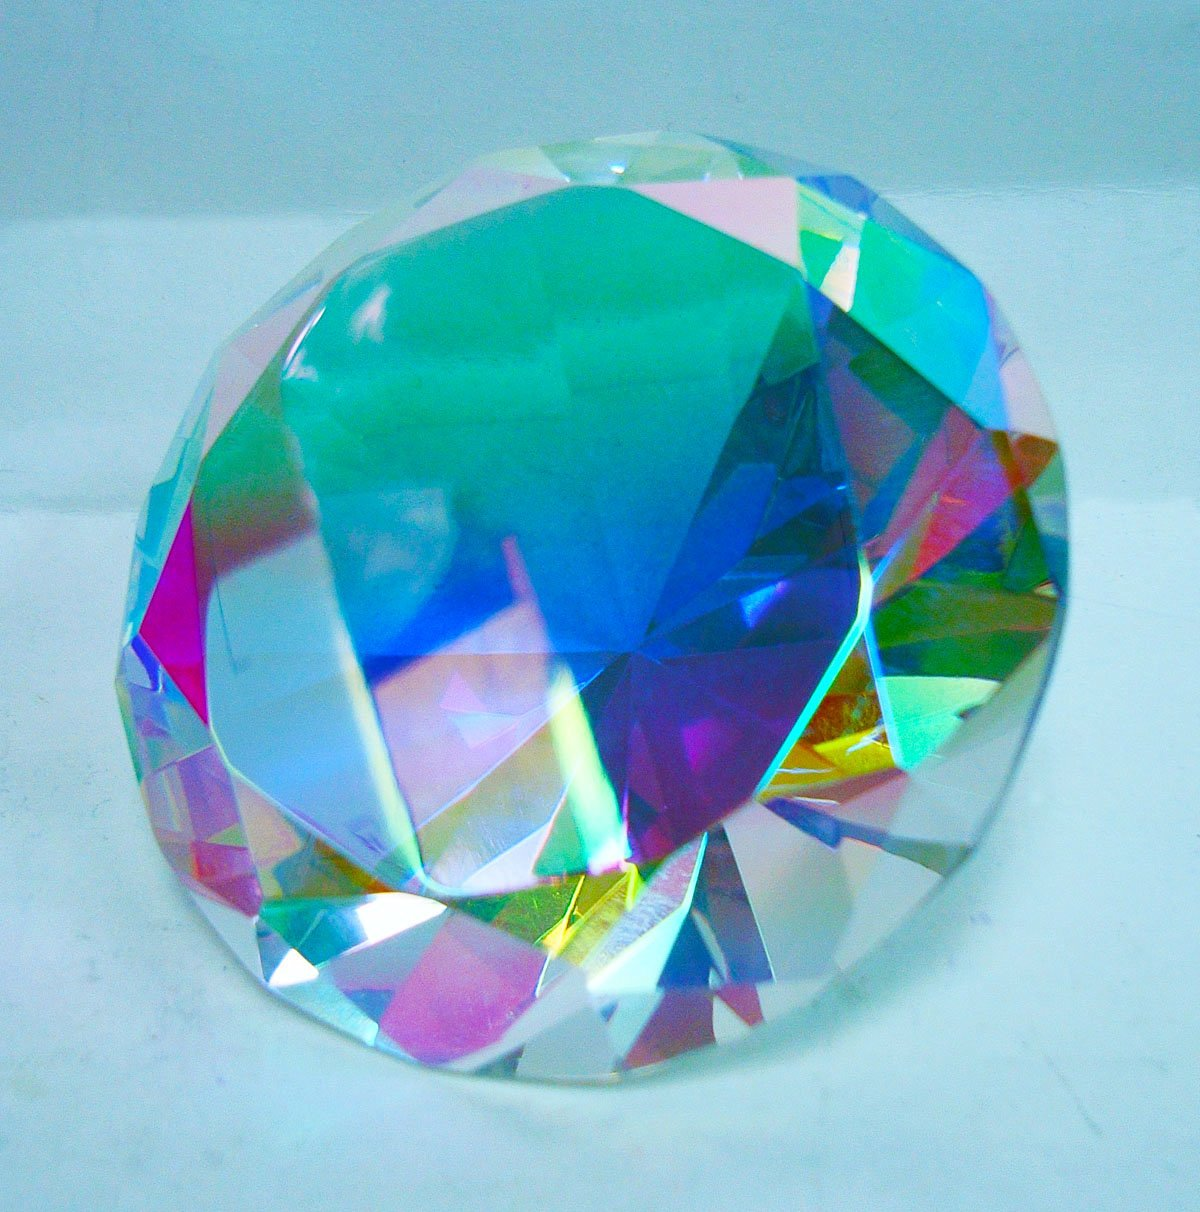 on diamond a glass photos isolated image stock light of studio white clear refraction photo photography